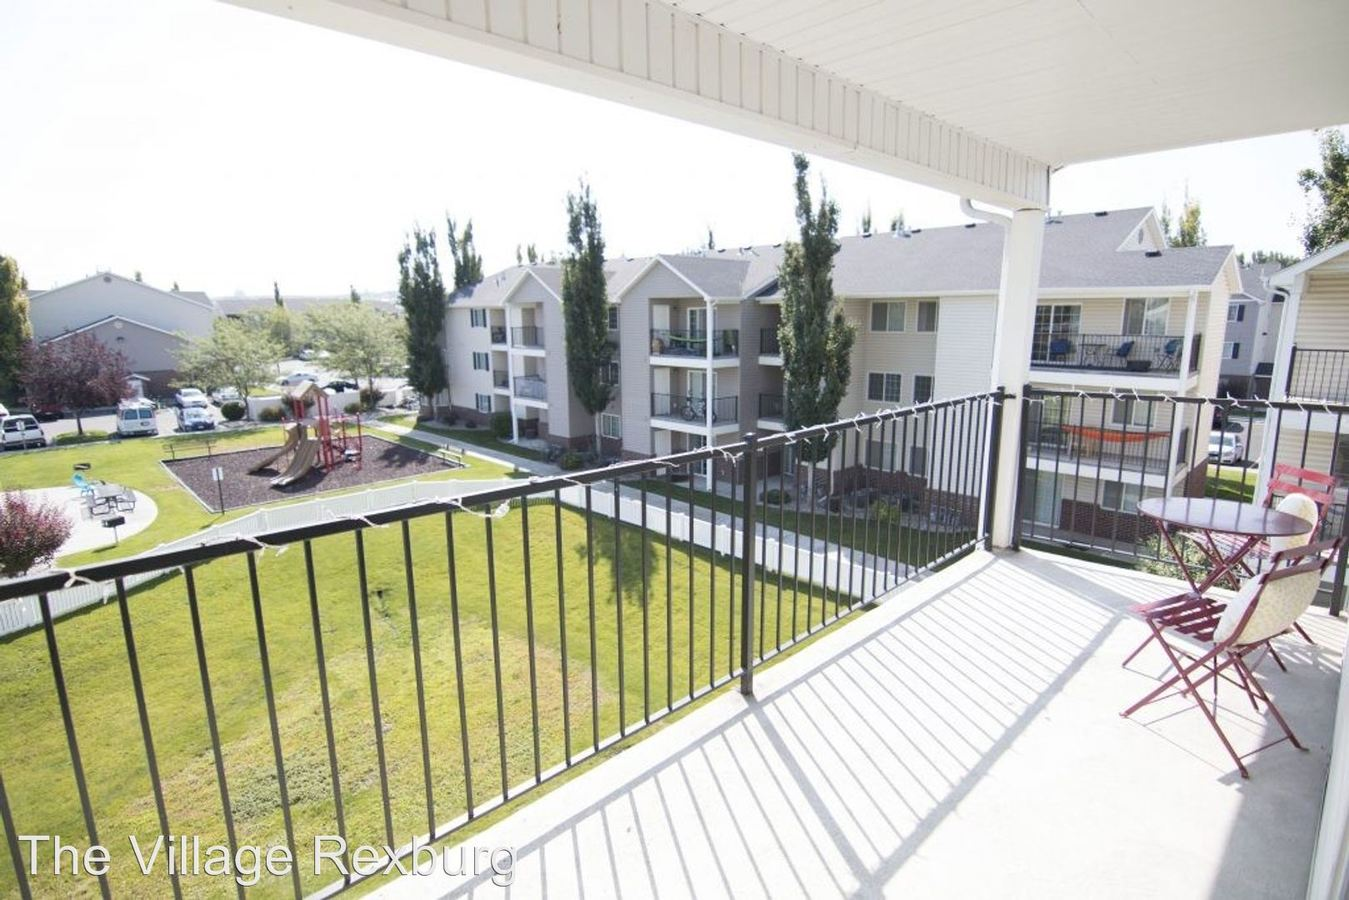 2 Bedrooms 1 Bathroom Apartment for rent at 490 Pioneer Road in Rexburg, ID